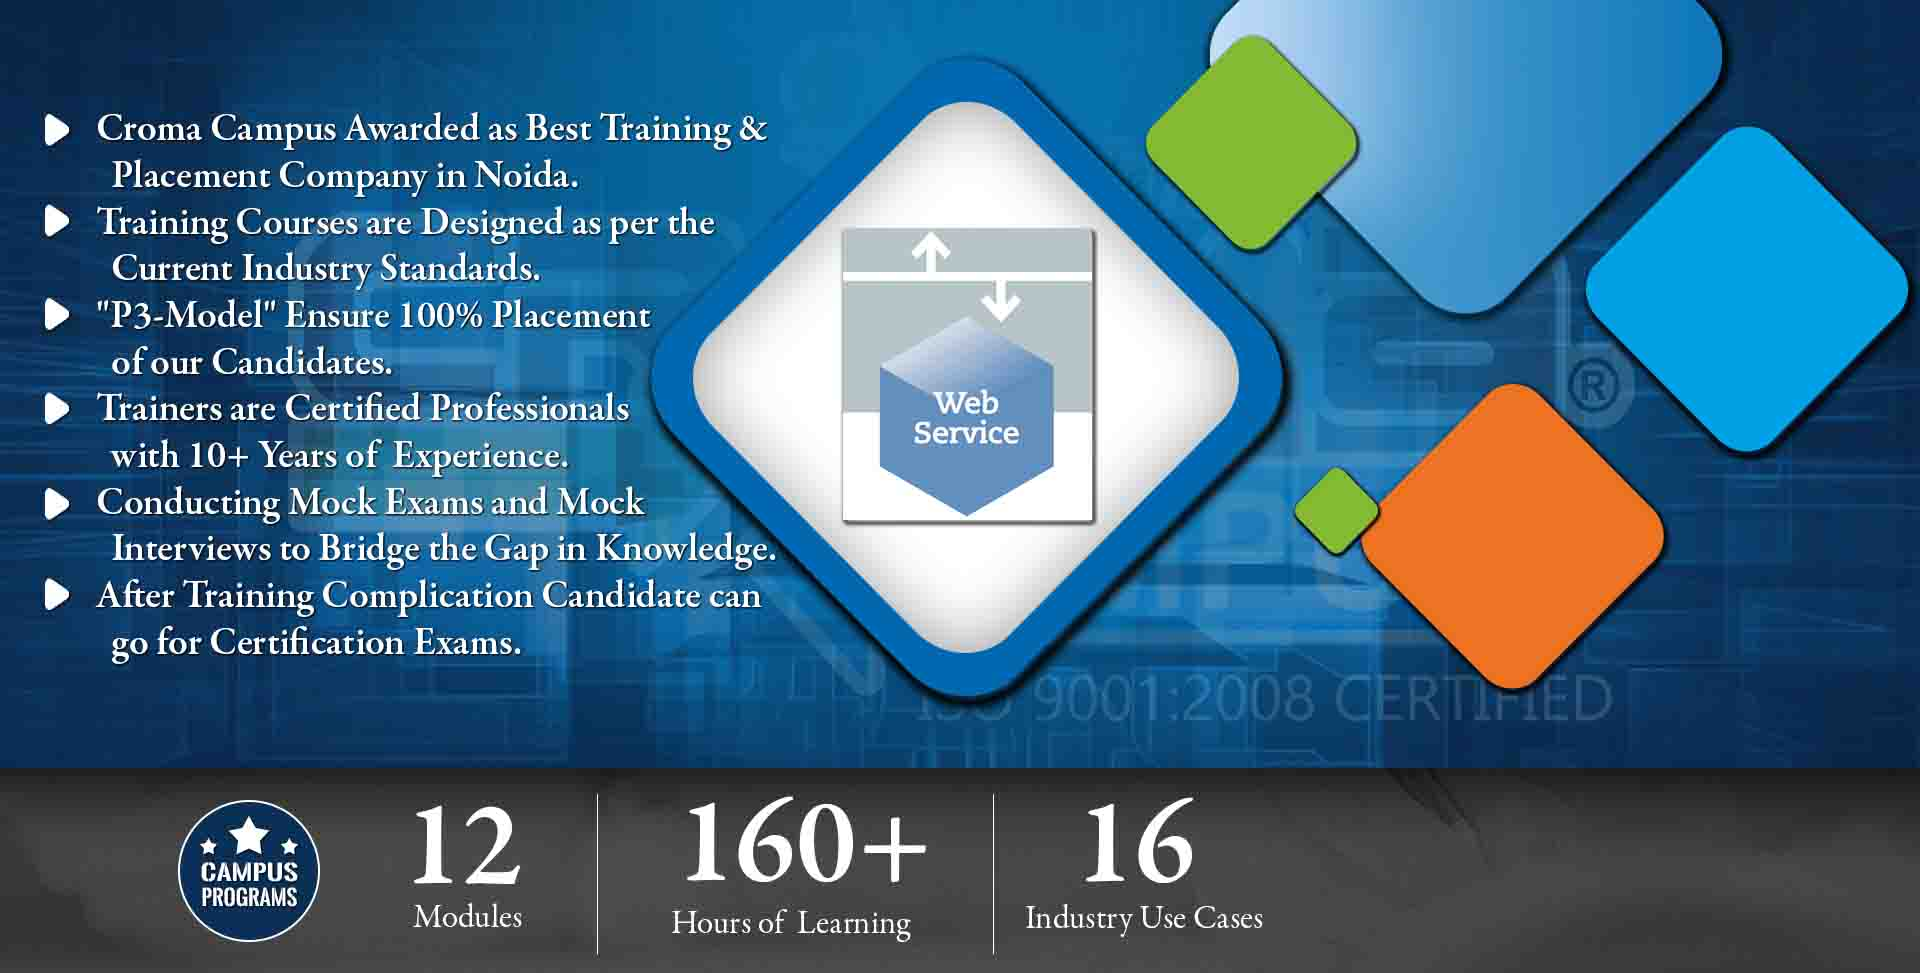 Web Service Training in Delhi NCR- Croma Campus